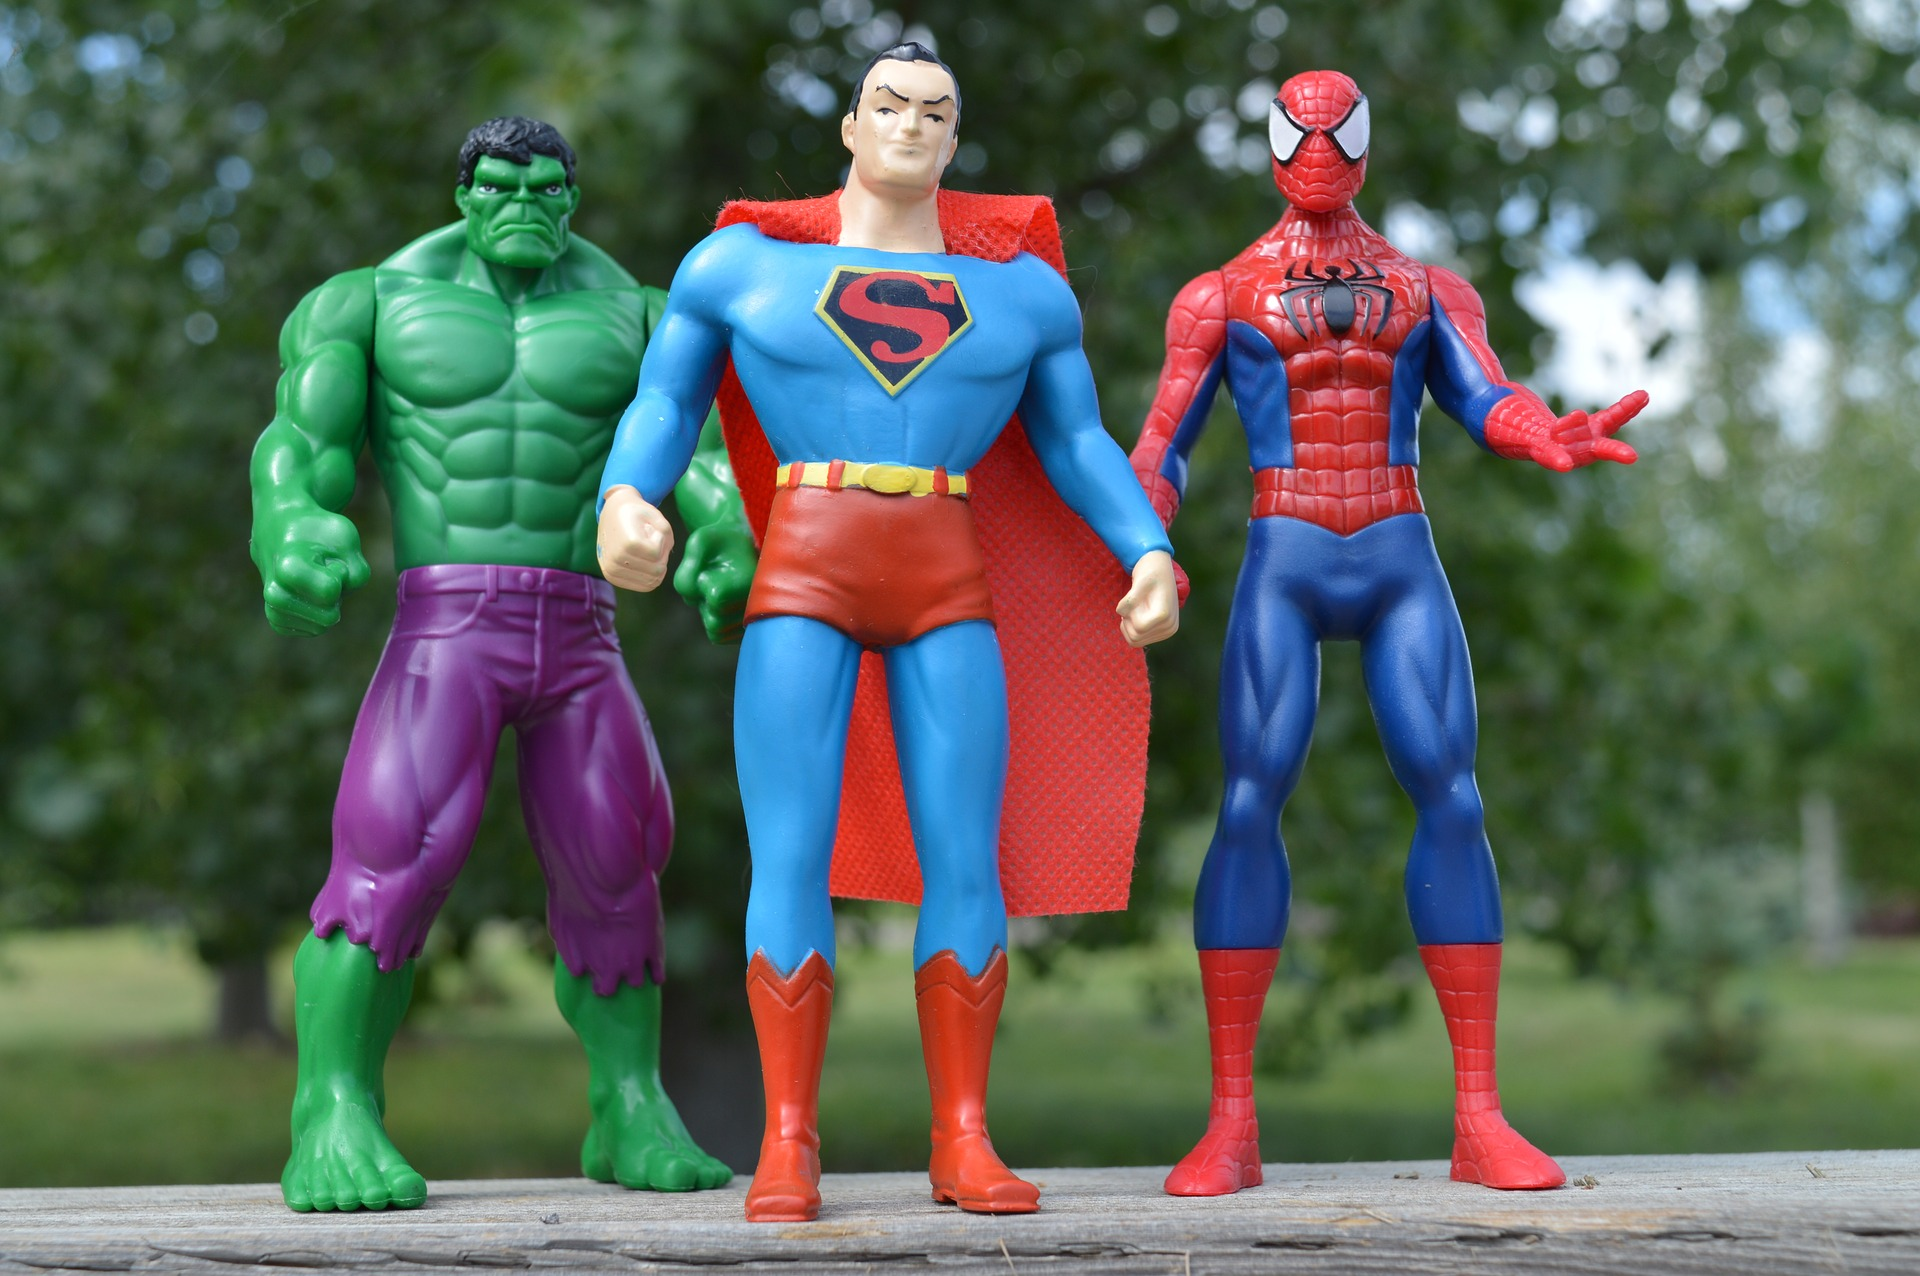 5 'Super Hero' Rules for Toddlers